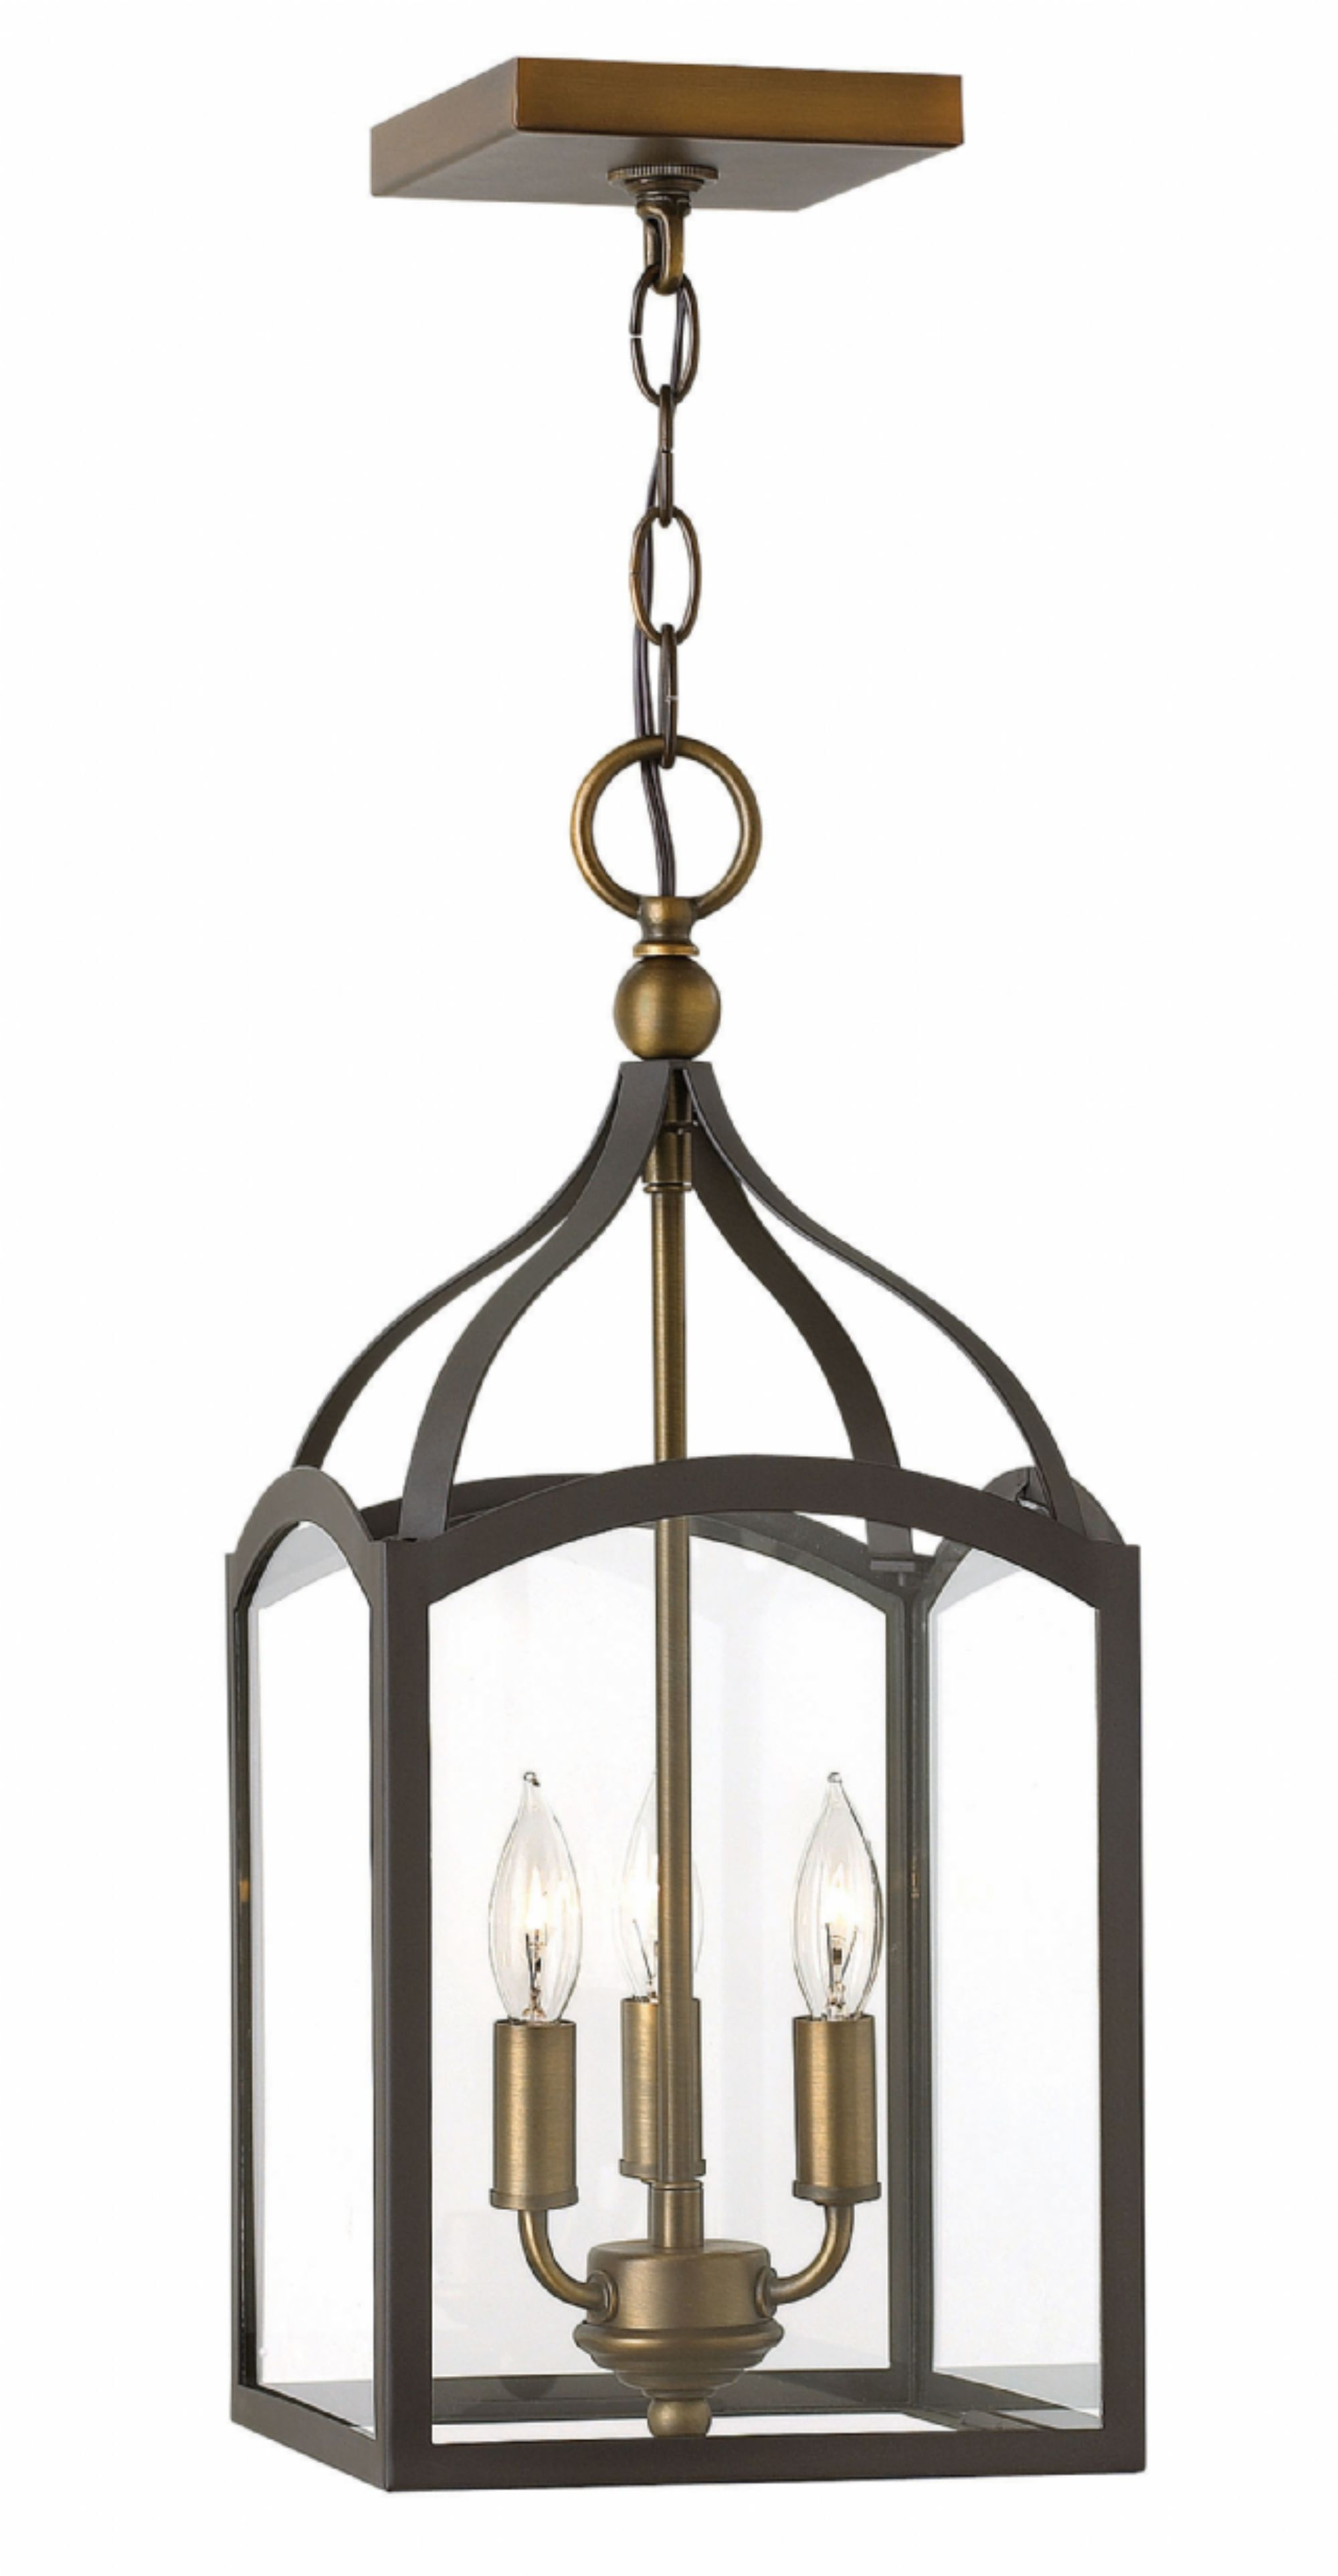 Island Pendant Hinkley Lighting – Clarendon 3413Bz | Selected Light Inside Brass Porch Hinkley Lighting (#10 of 15)